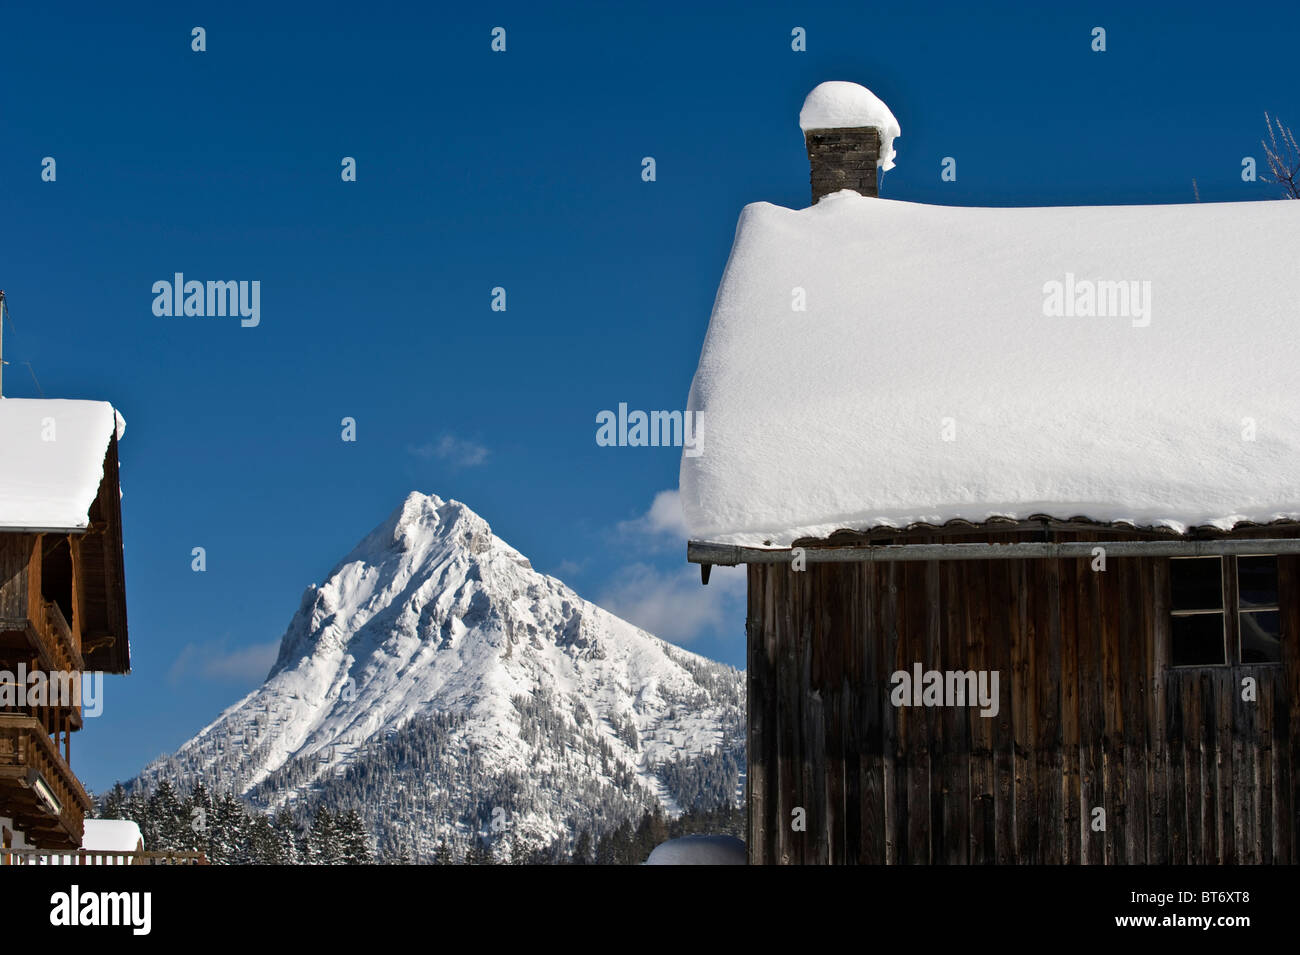 Mt Guffert, seen from Achenkirch Leitn, alps, Tyrol, Austria Stock Photo